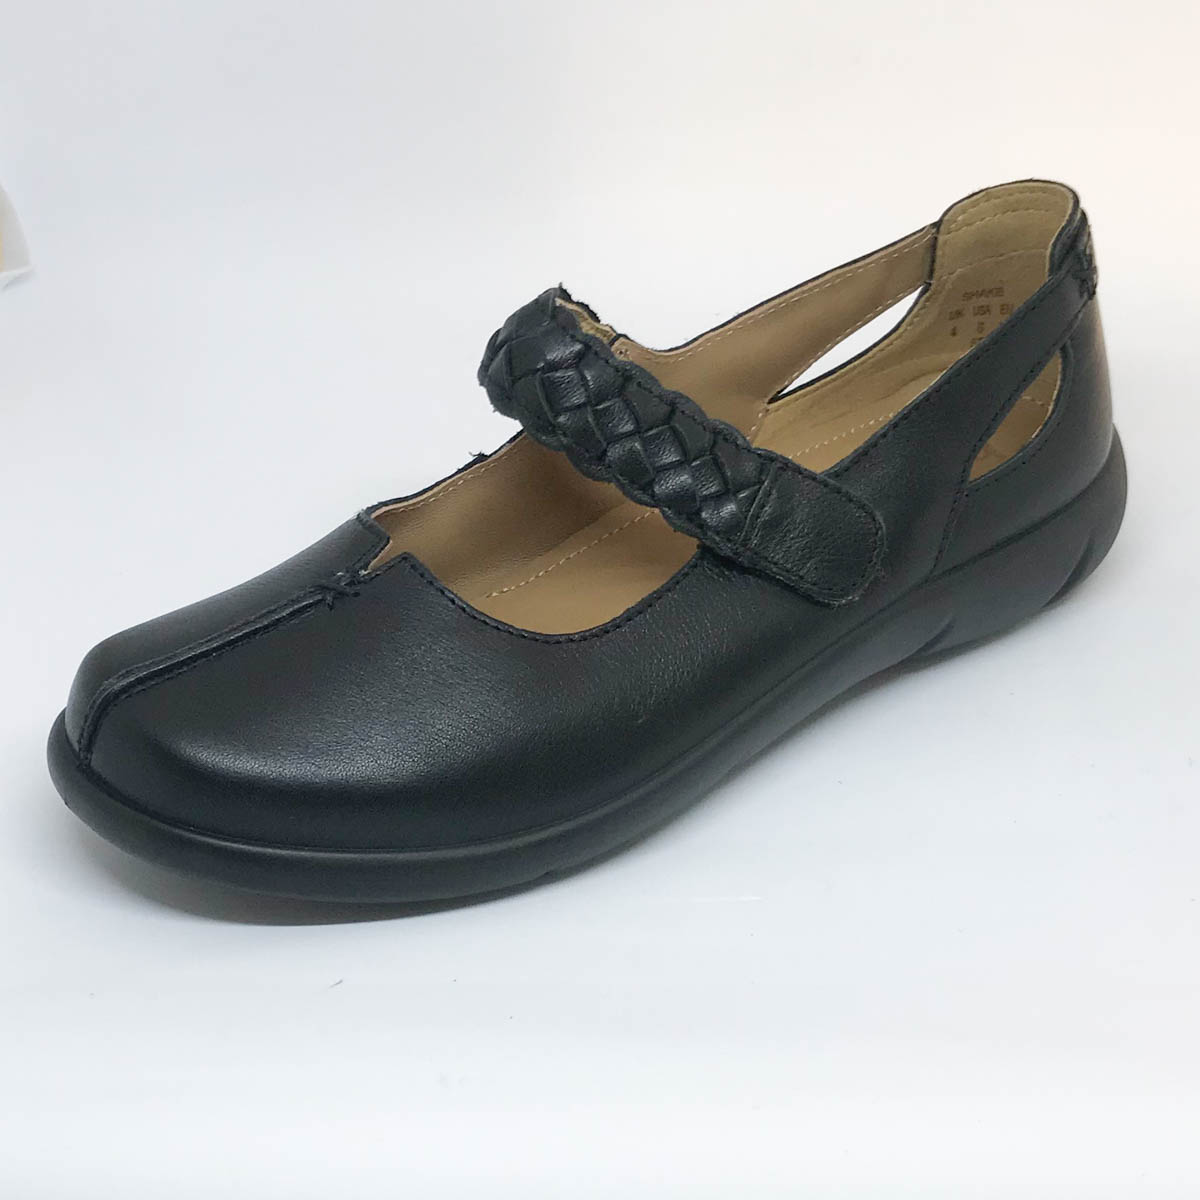 bc9907a5782 Hotter Mary Jane Shoes - Black leather - 9108 30 SHAKE E FIT